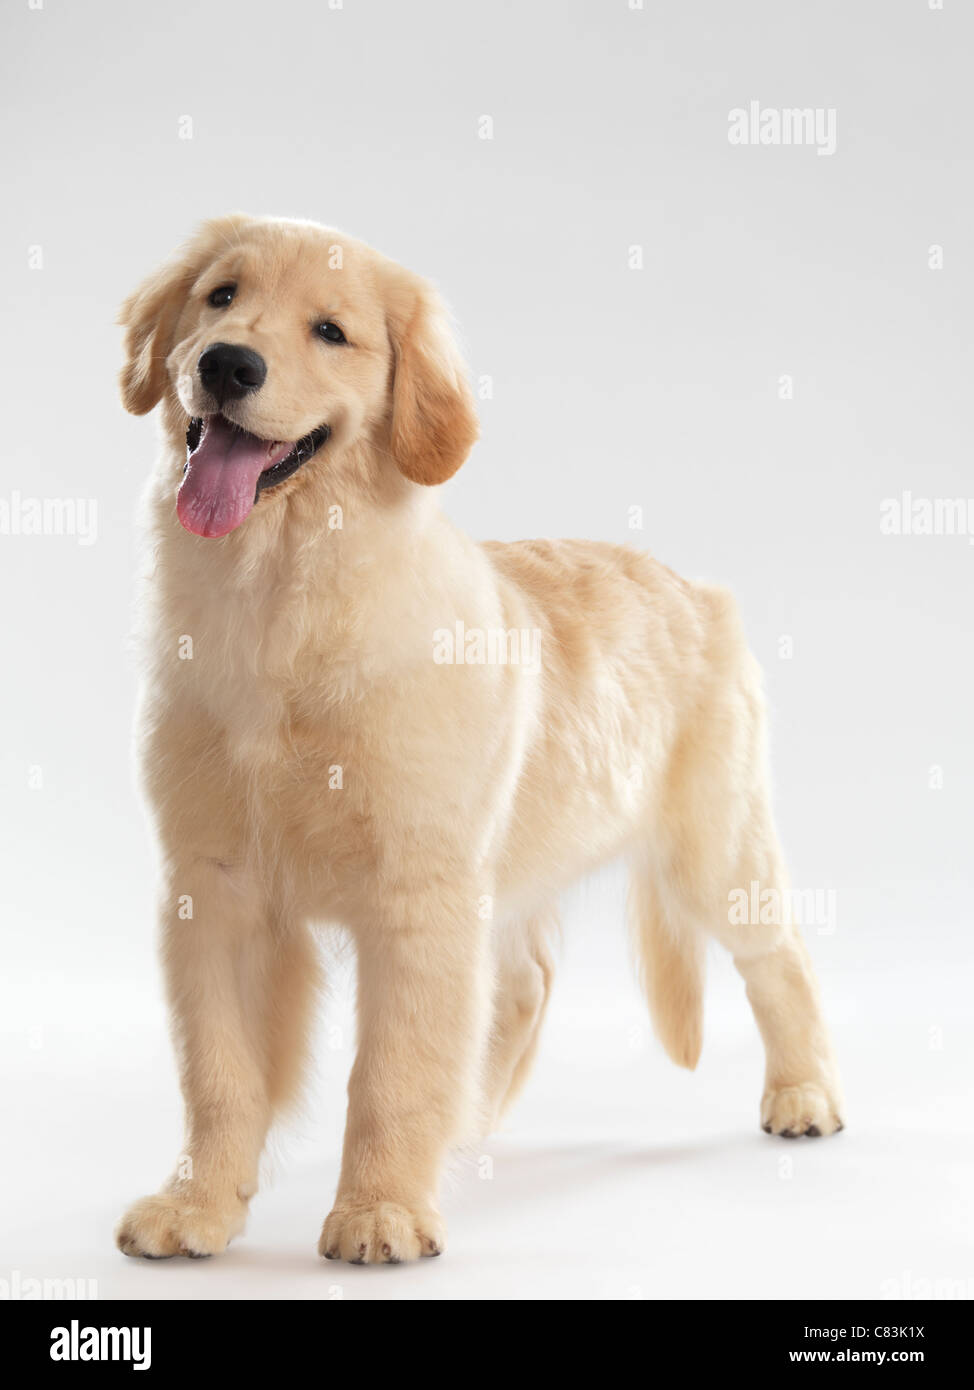 Portrait of a Golden Retriever 4 month old female puppy isolated on white background - Stock Image